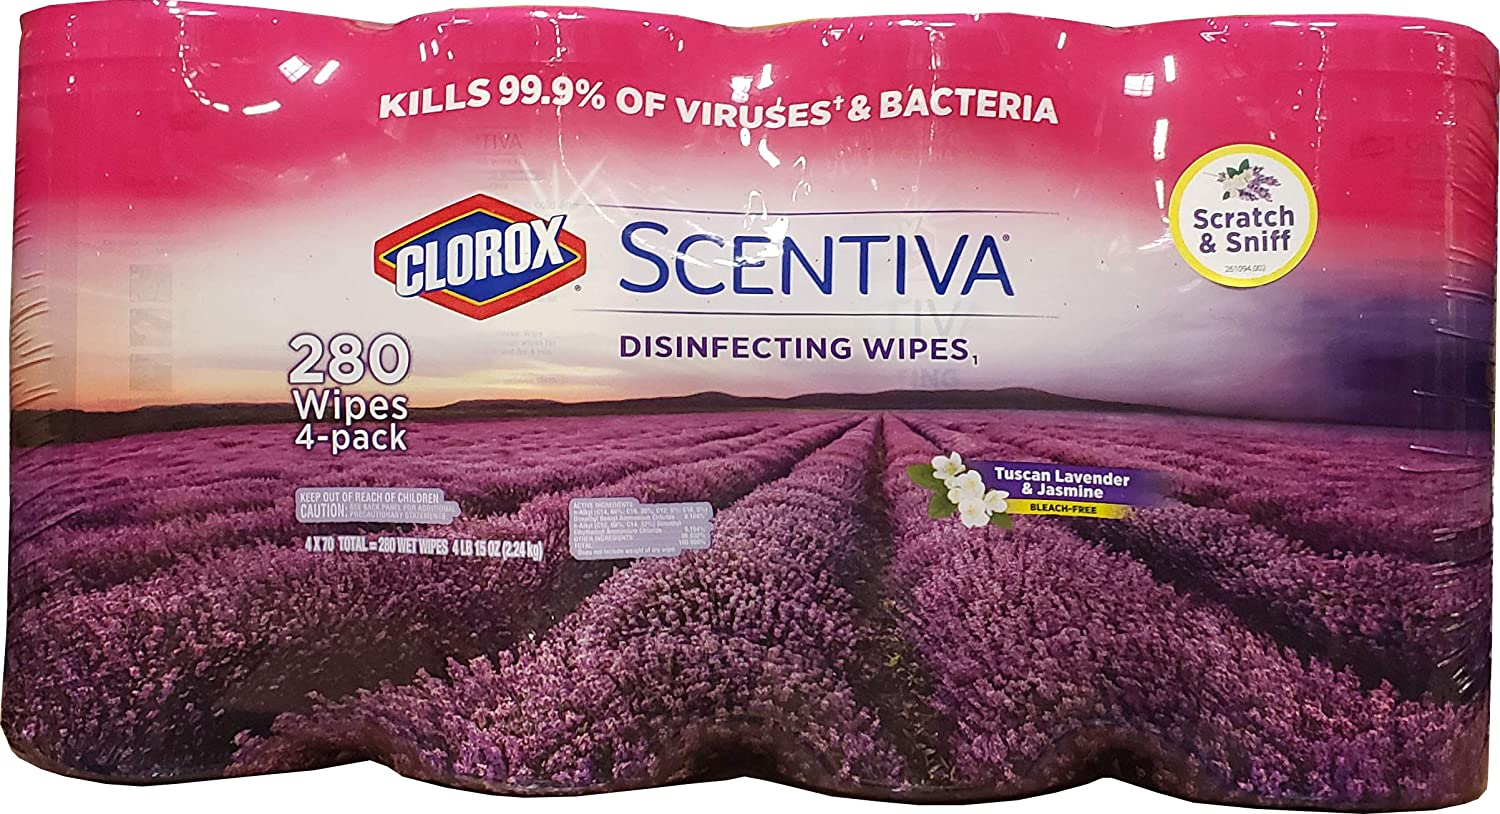 Clorox Clorox Scentiva Disinfecting Wipes (4 X 70Count Net 280 Wipes), 280Count, White